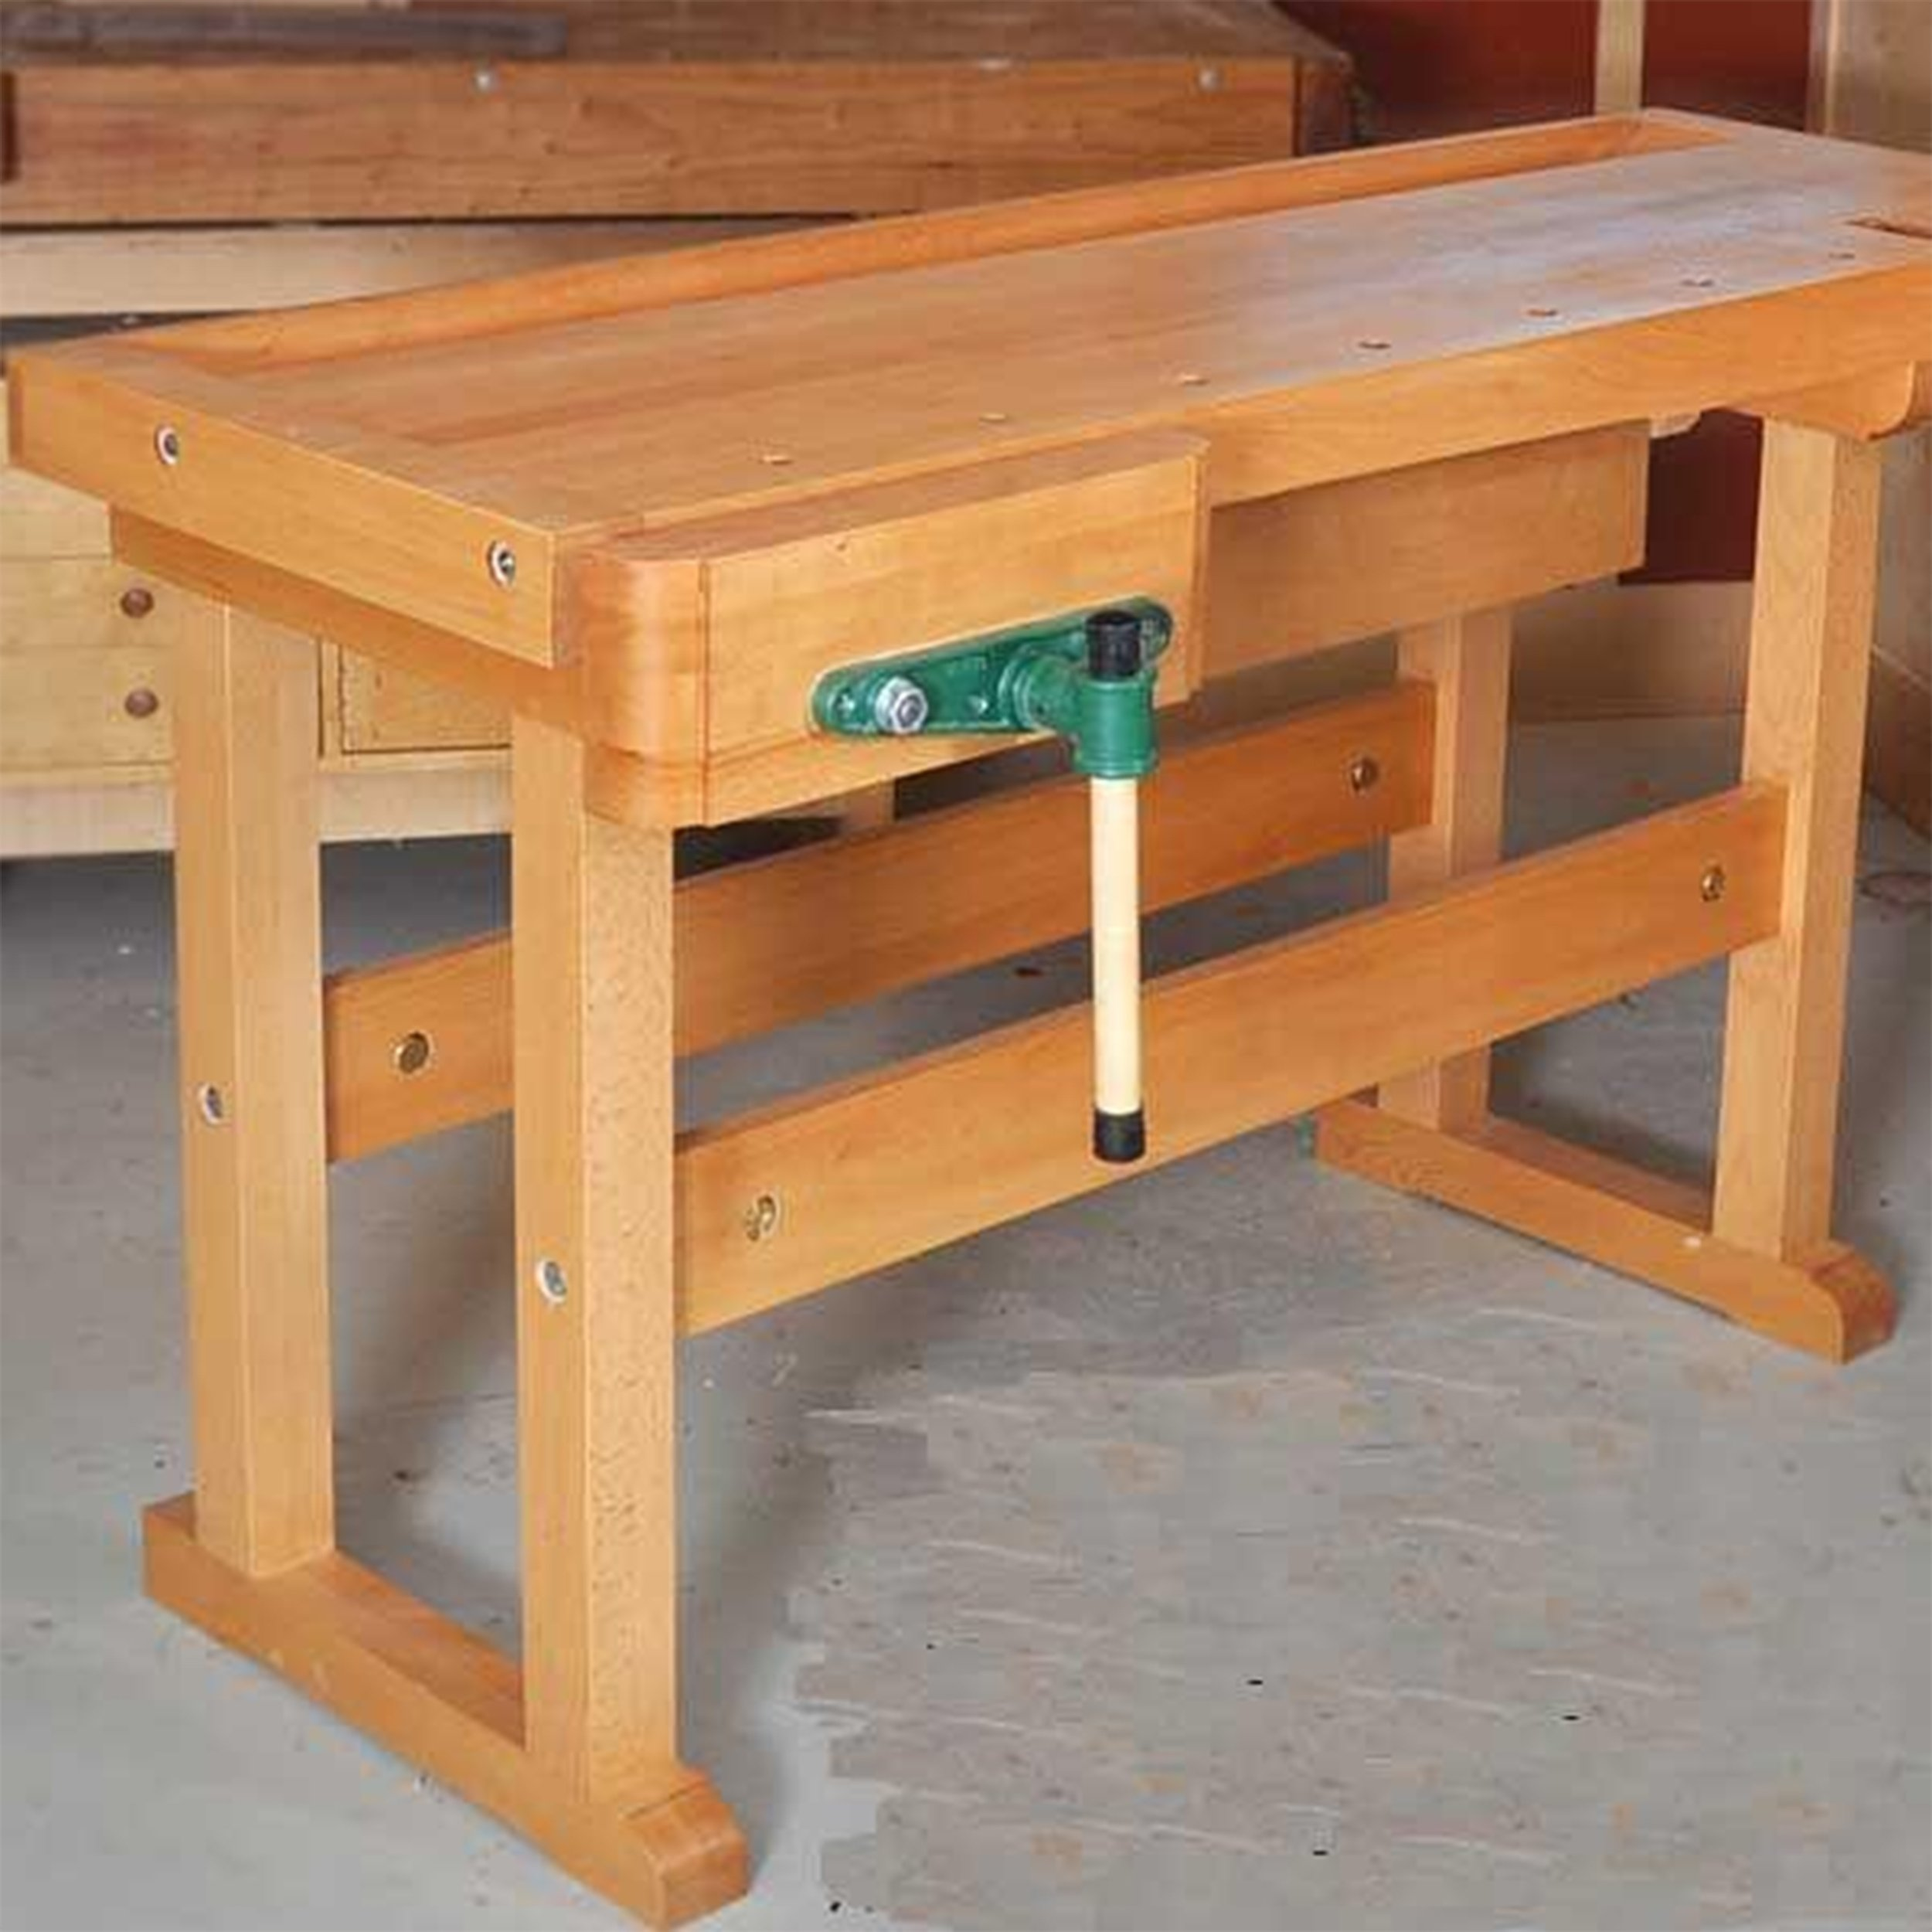 Woodworking Project Paper Plan to Build Classic Workbench by Woodcraft Magazine (Image #1)